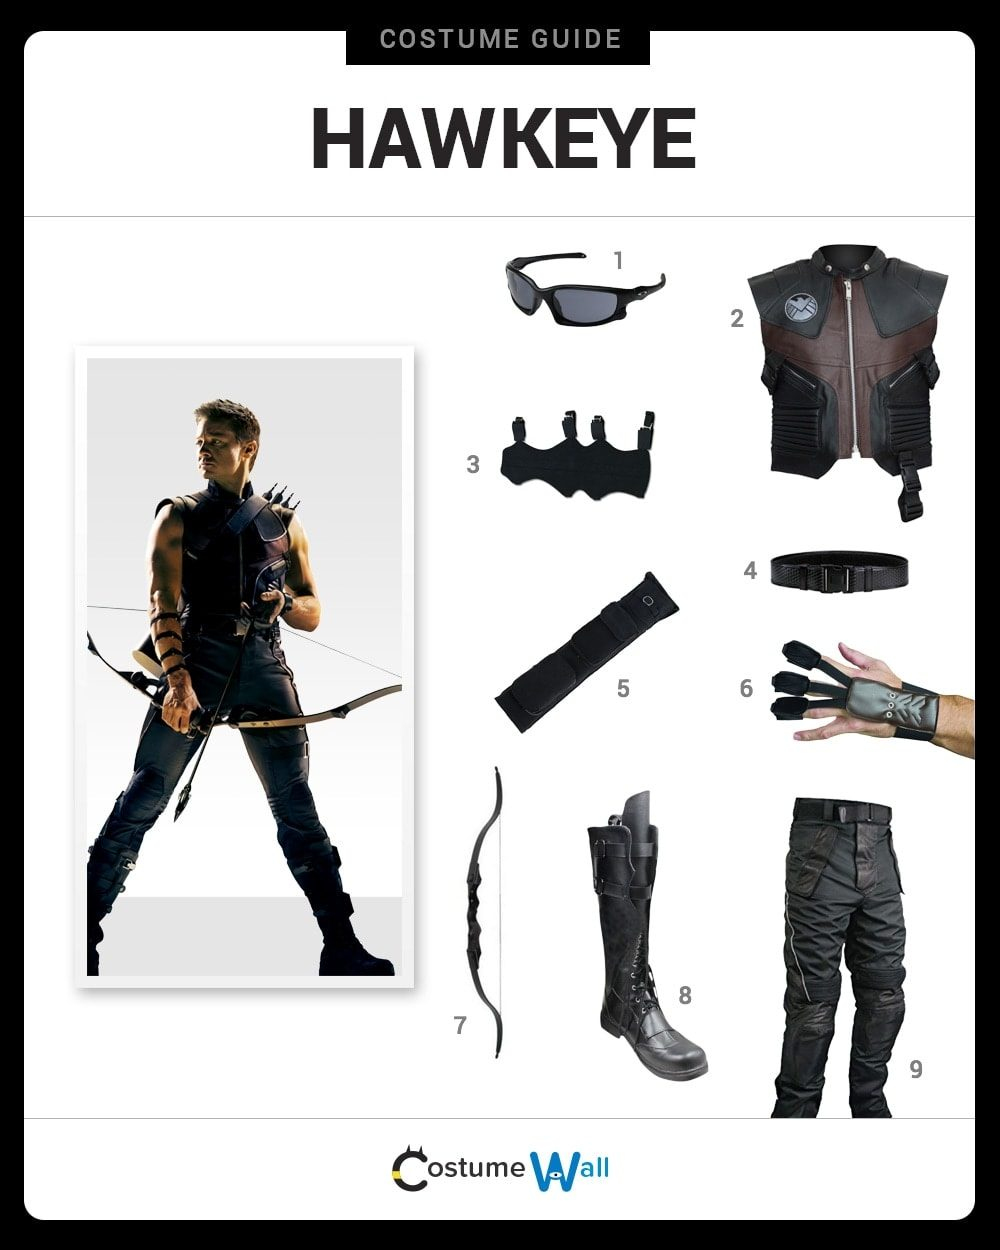 Hawkeye Costume Guide